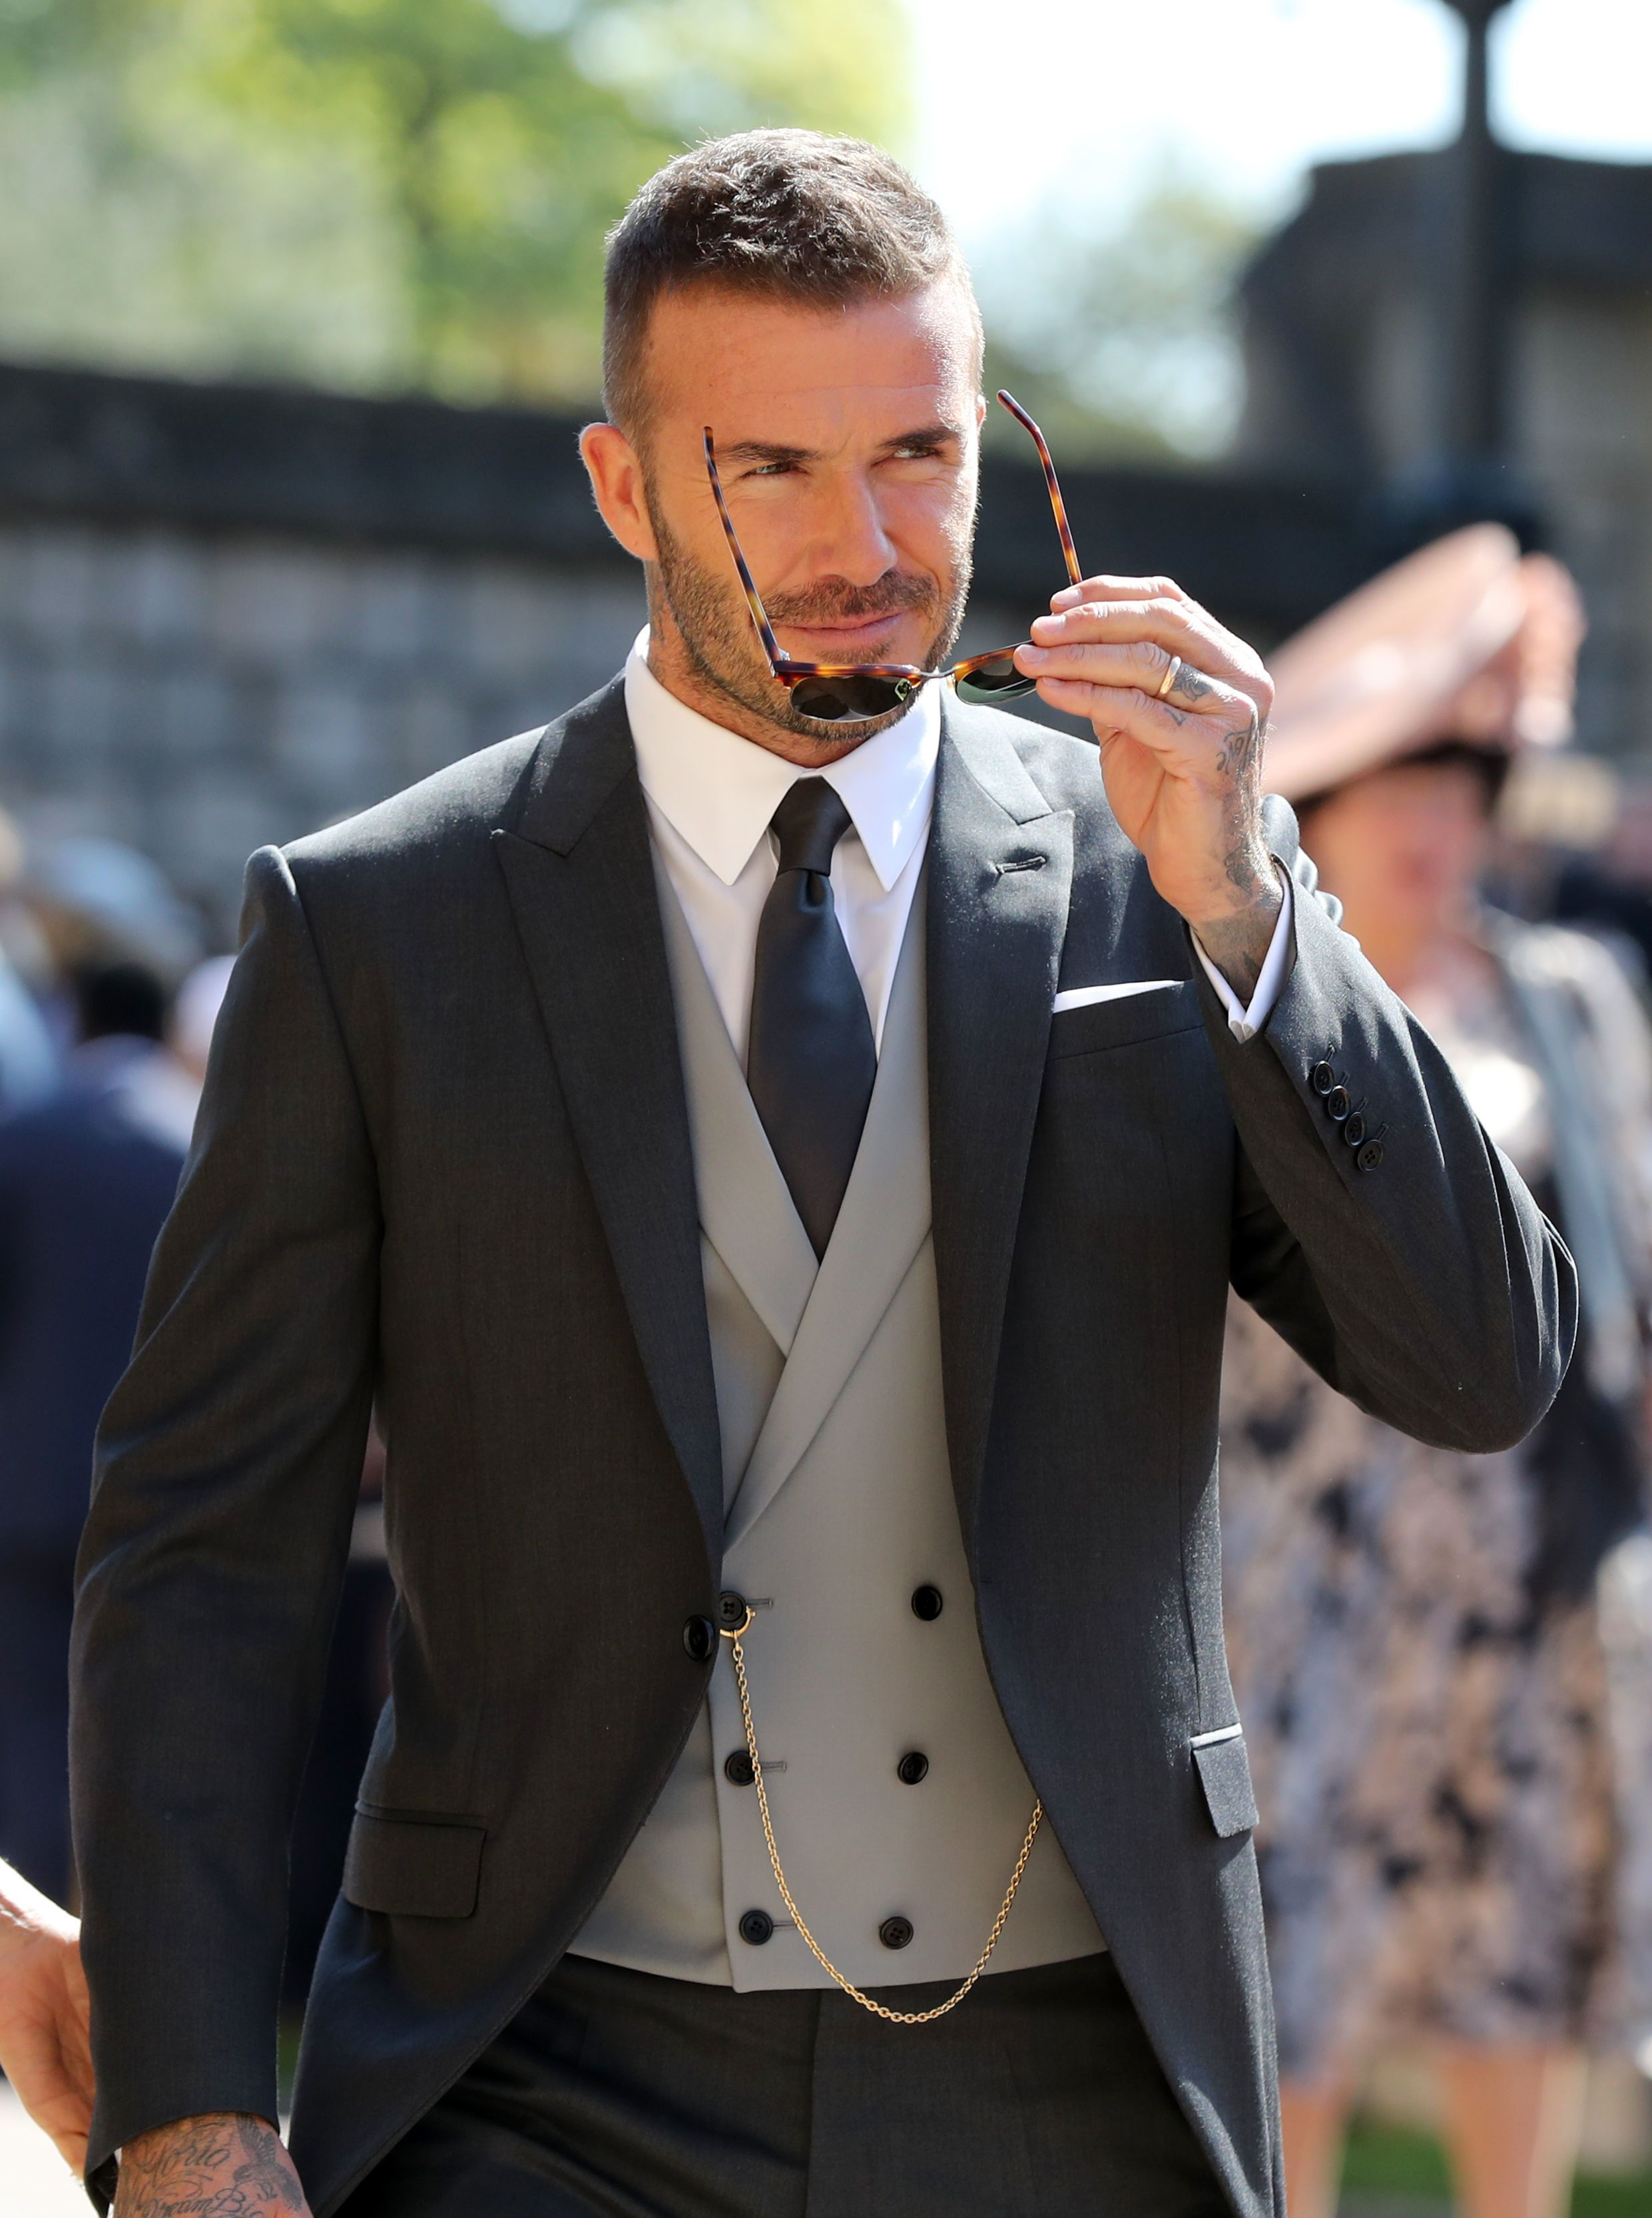 The former soccer player arrived wearing a charcoal grey wool twill morning coat and pants, a double-breasted waistcoat, a cotton poplin shirt, a grey silk satin tie and matching pocket square. The entire look was designed by Kim Jones for Dior Homme.